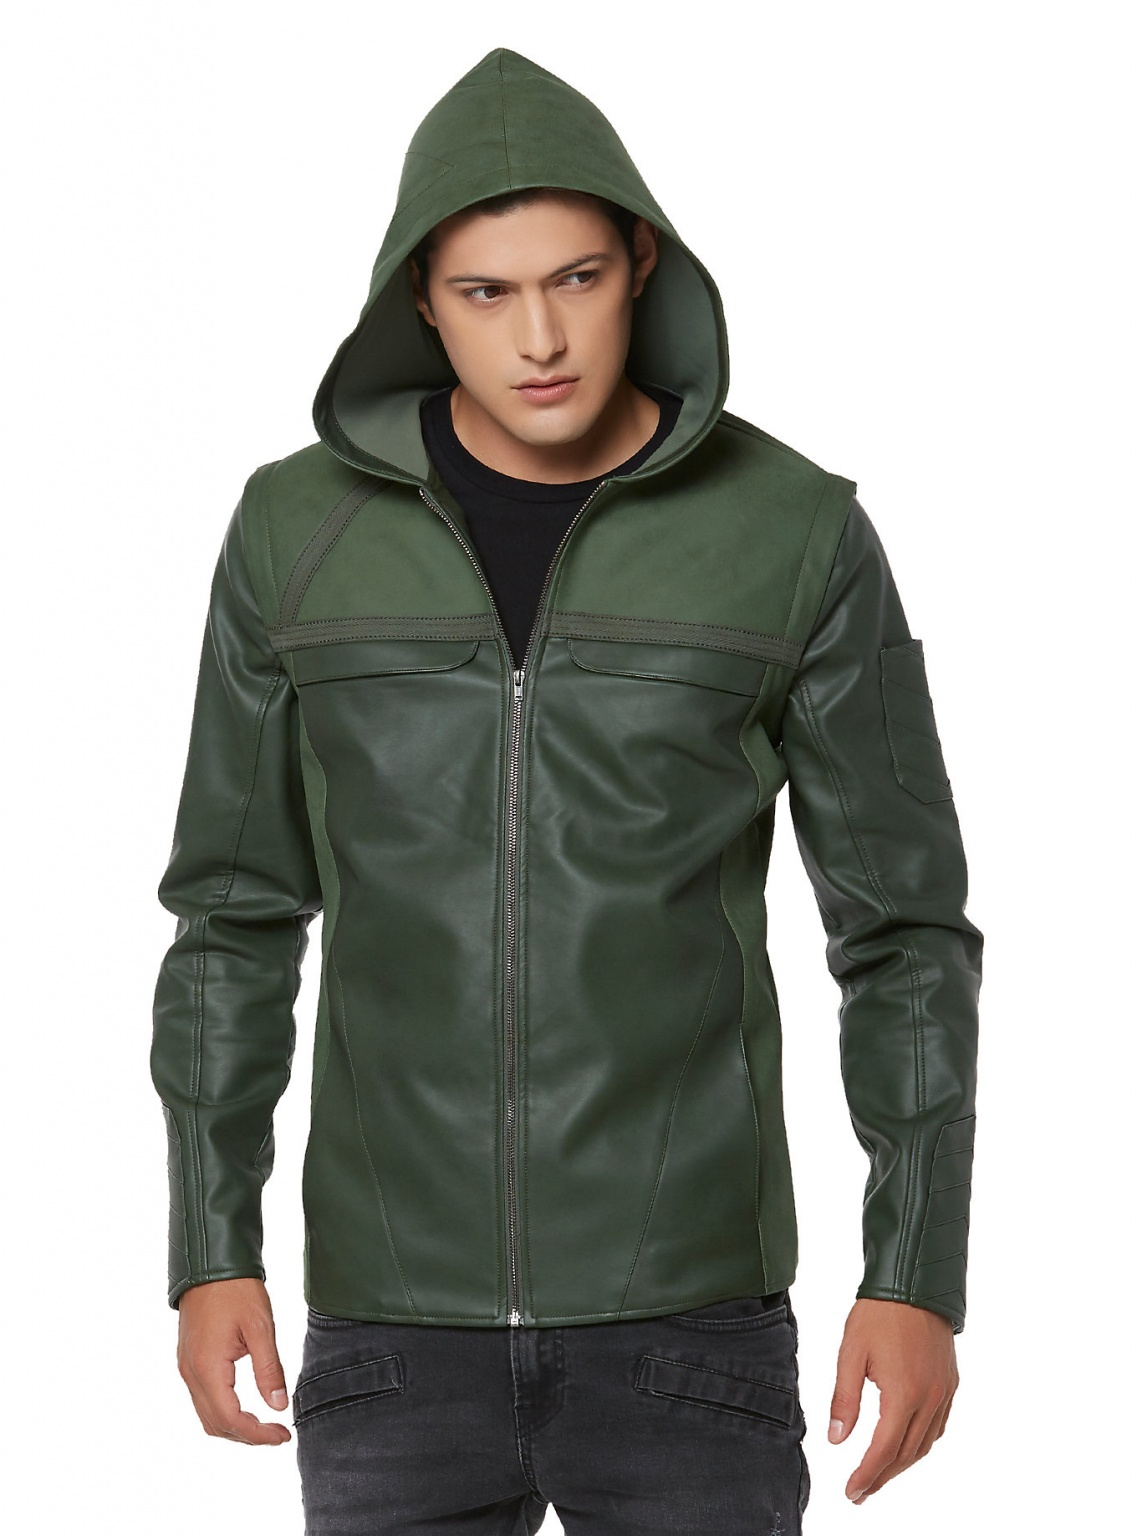 ARROW HOODED JACKET